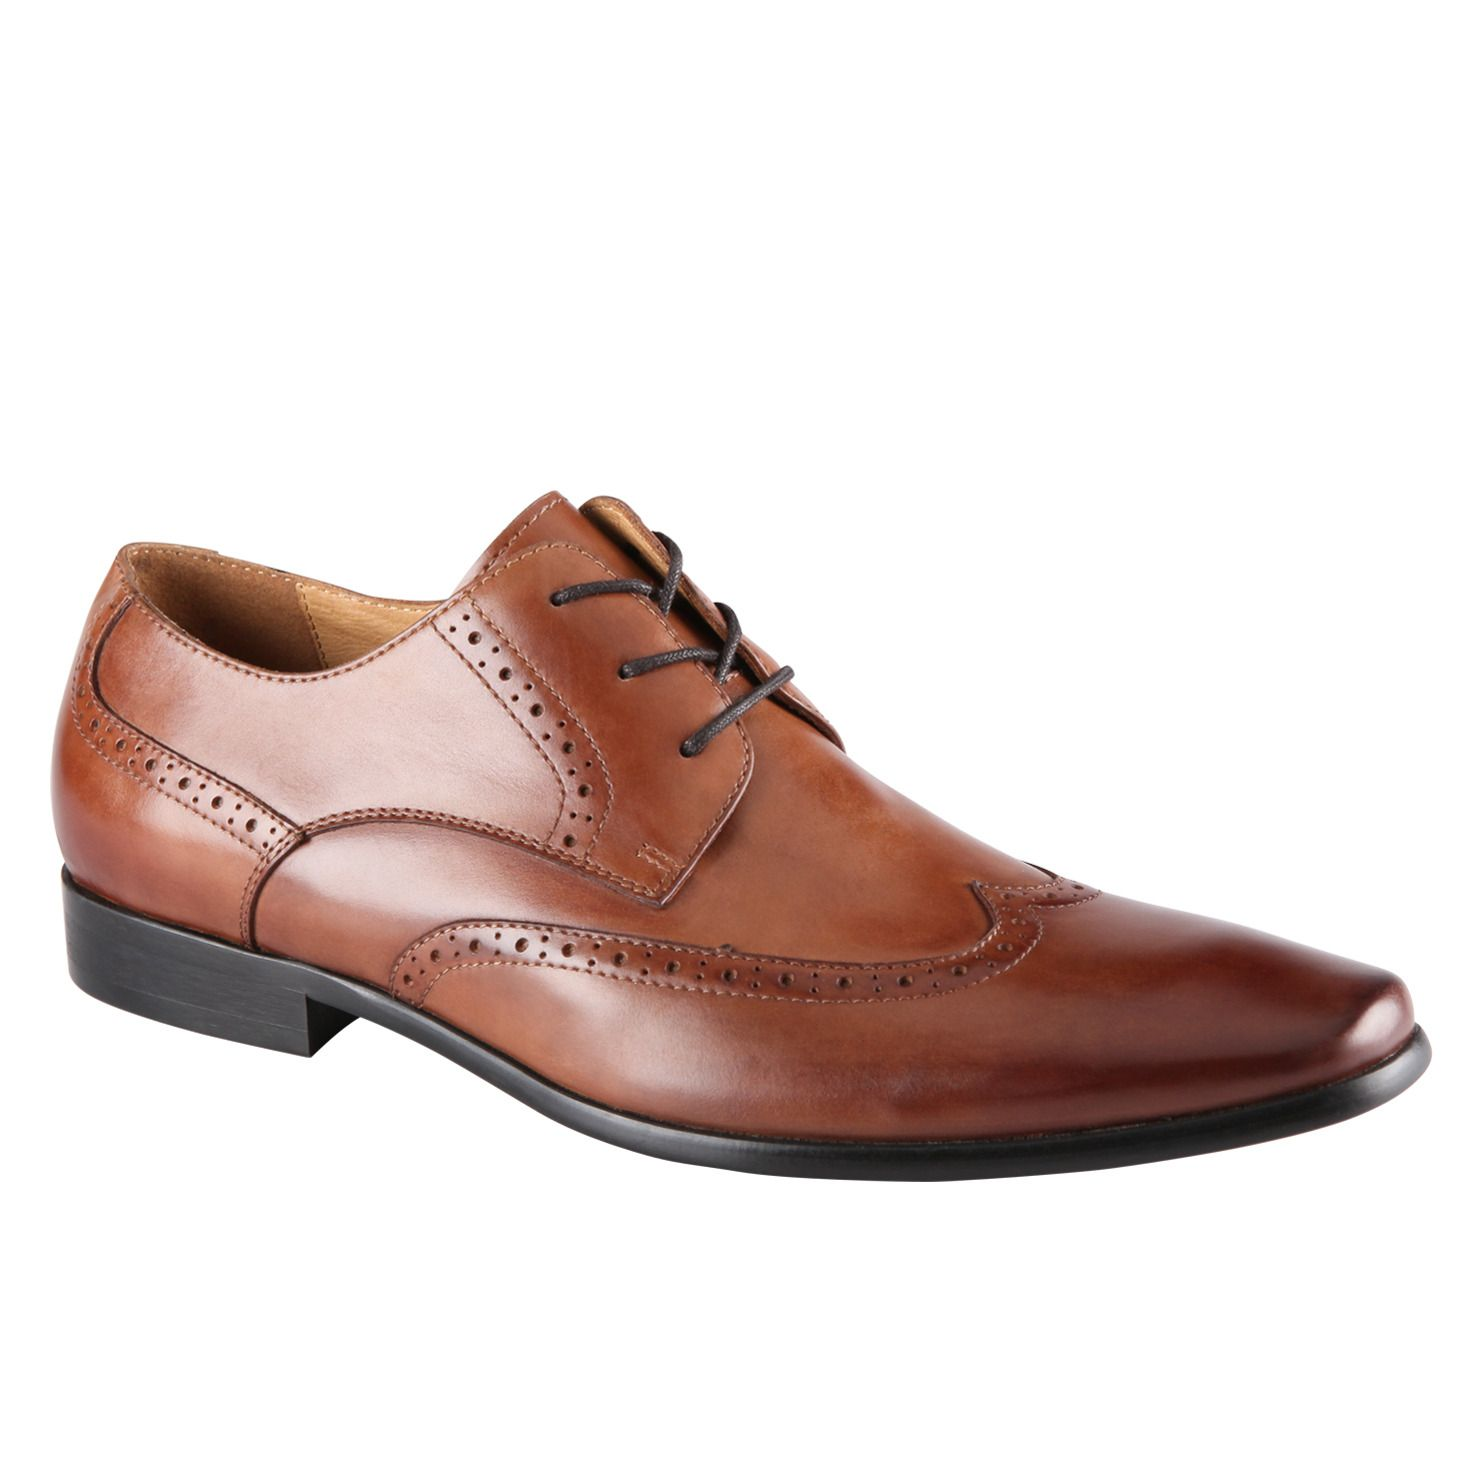 1dbce9f3cc4 KITCHELL - men's dress lace-ups shoes for sale at ALDO Shoes. | GQ ...